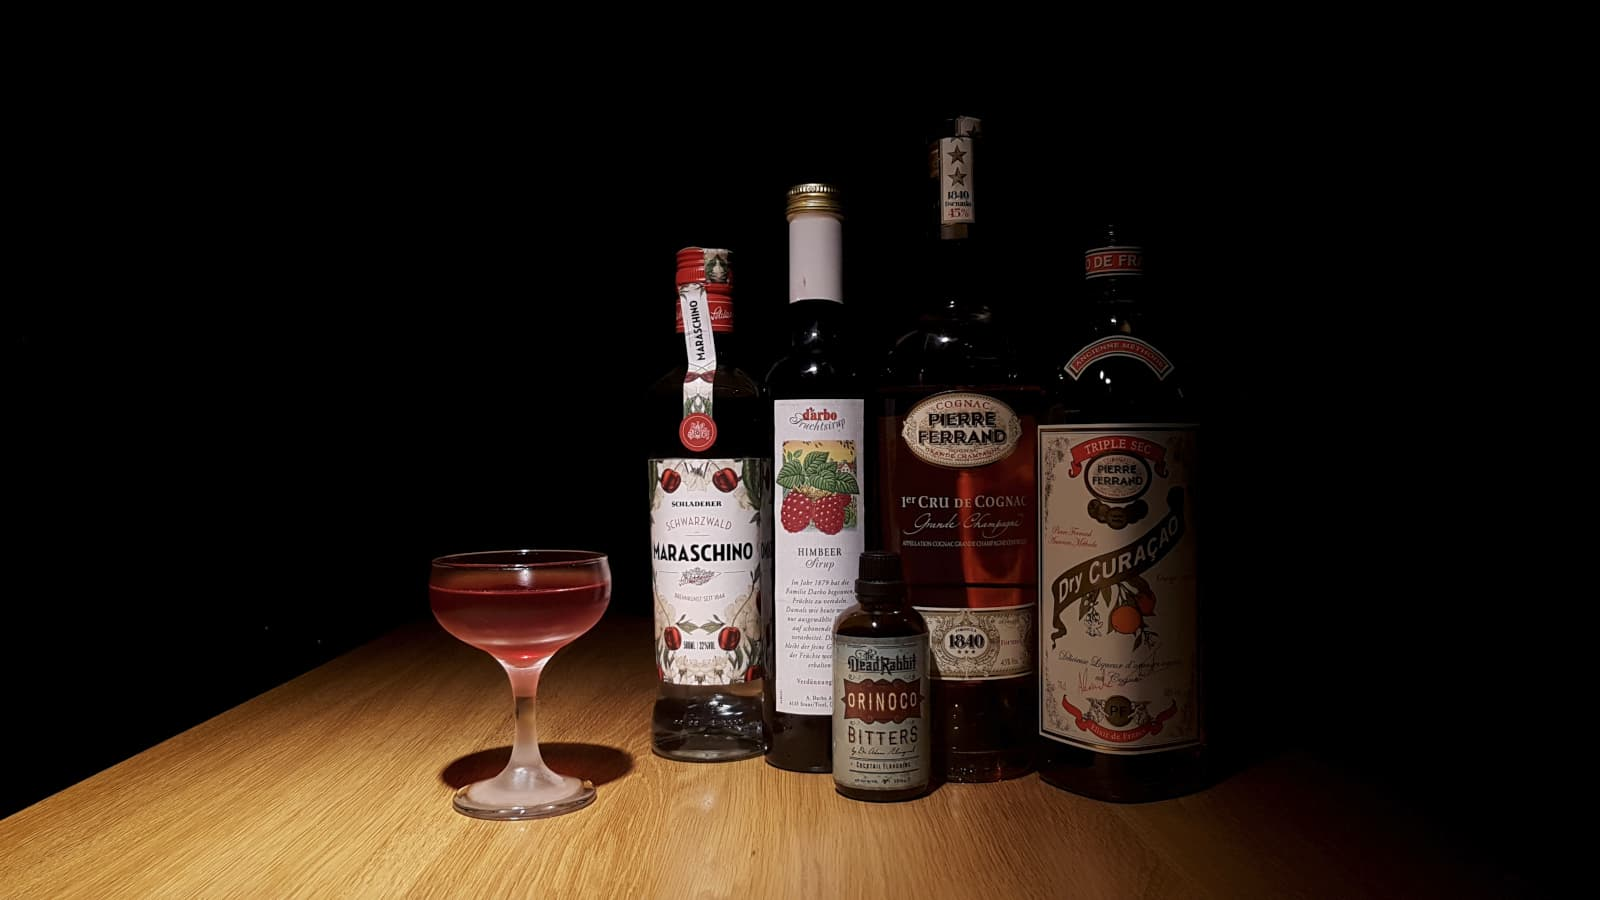 East India Cocktail.